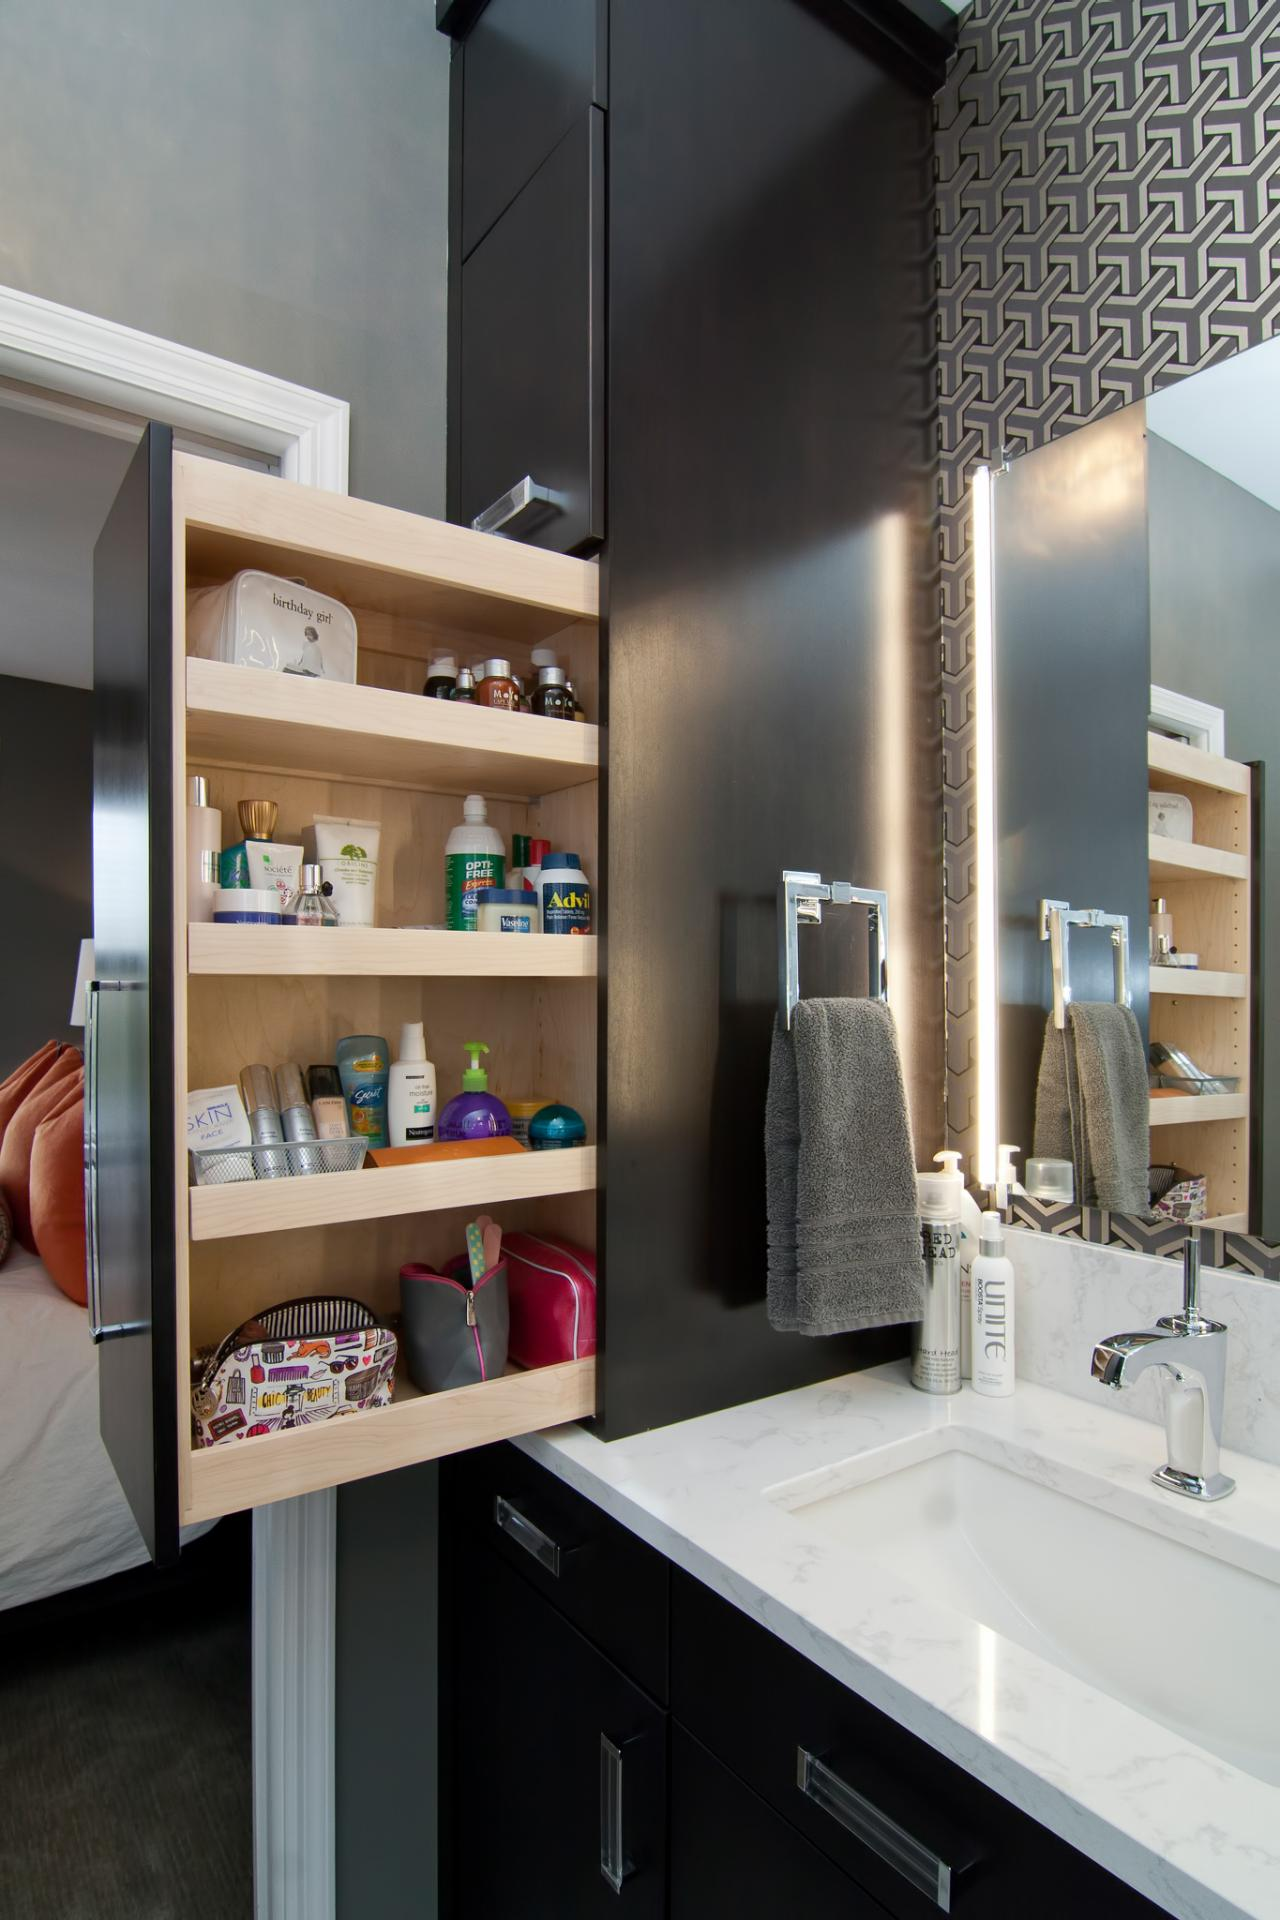 Small Space Bathroom Storage Ideas | DIY Network Blog: Made + ...